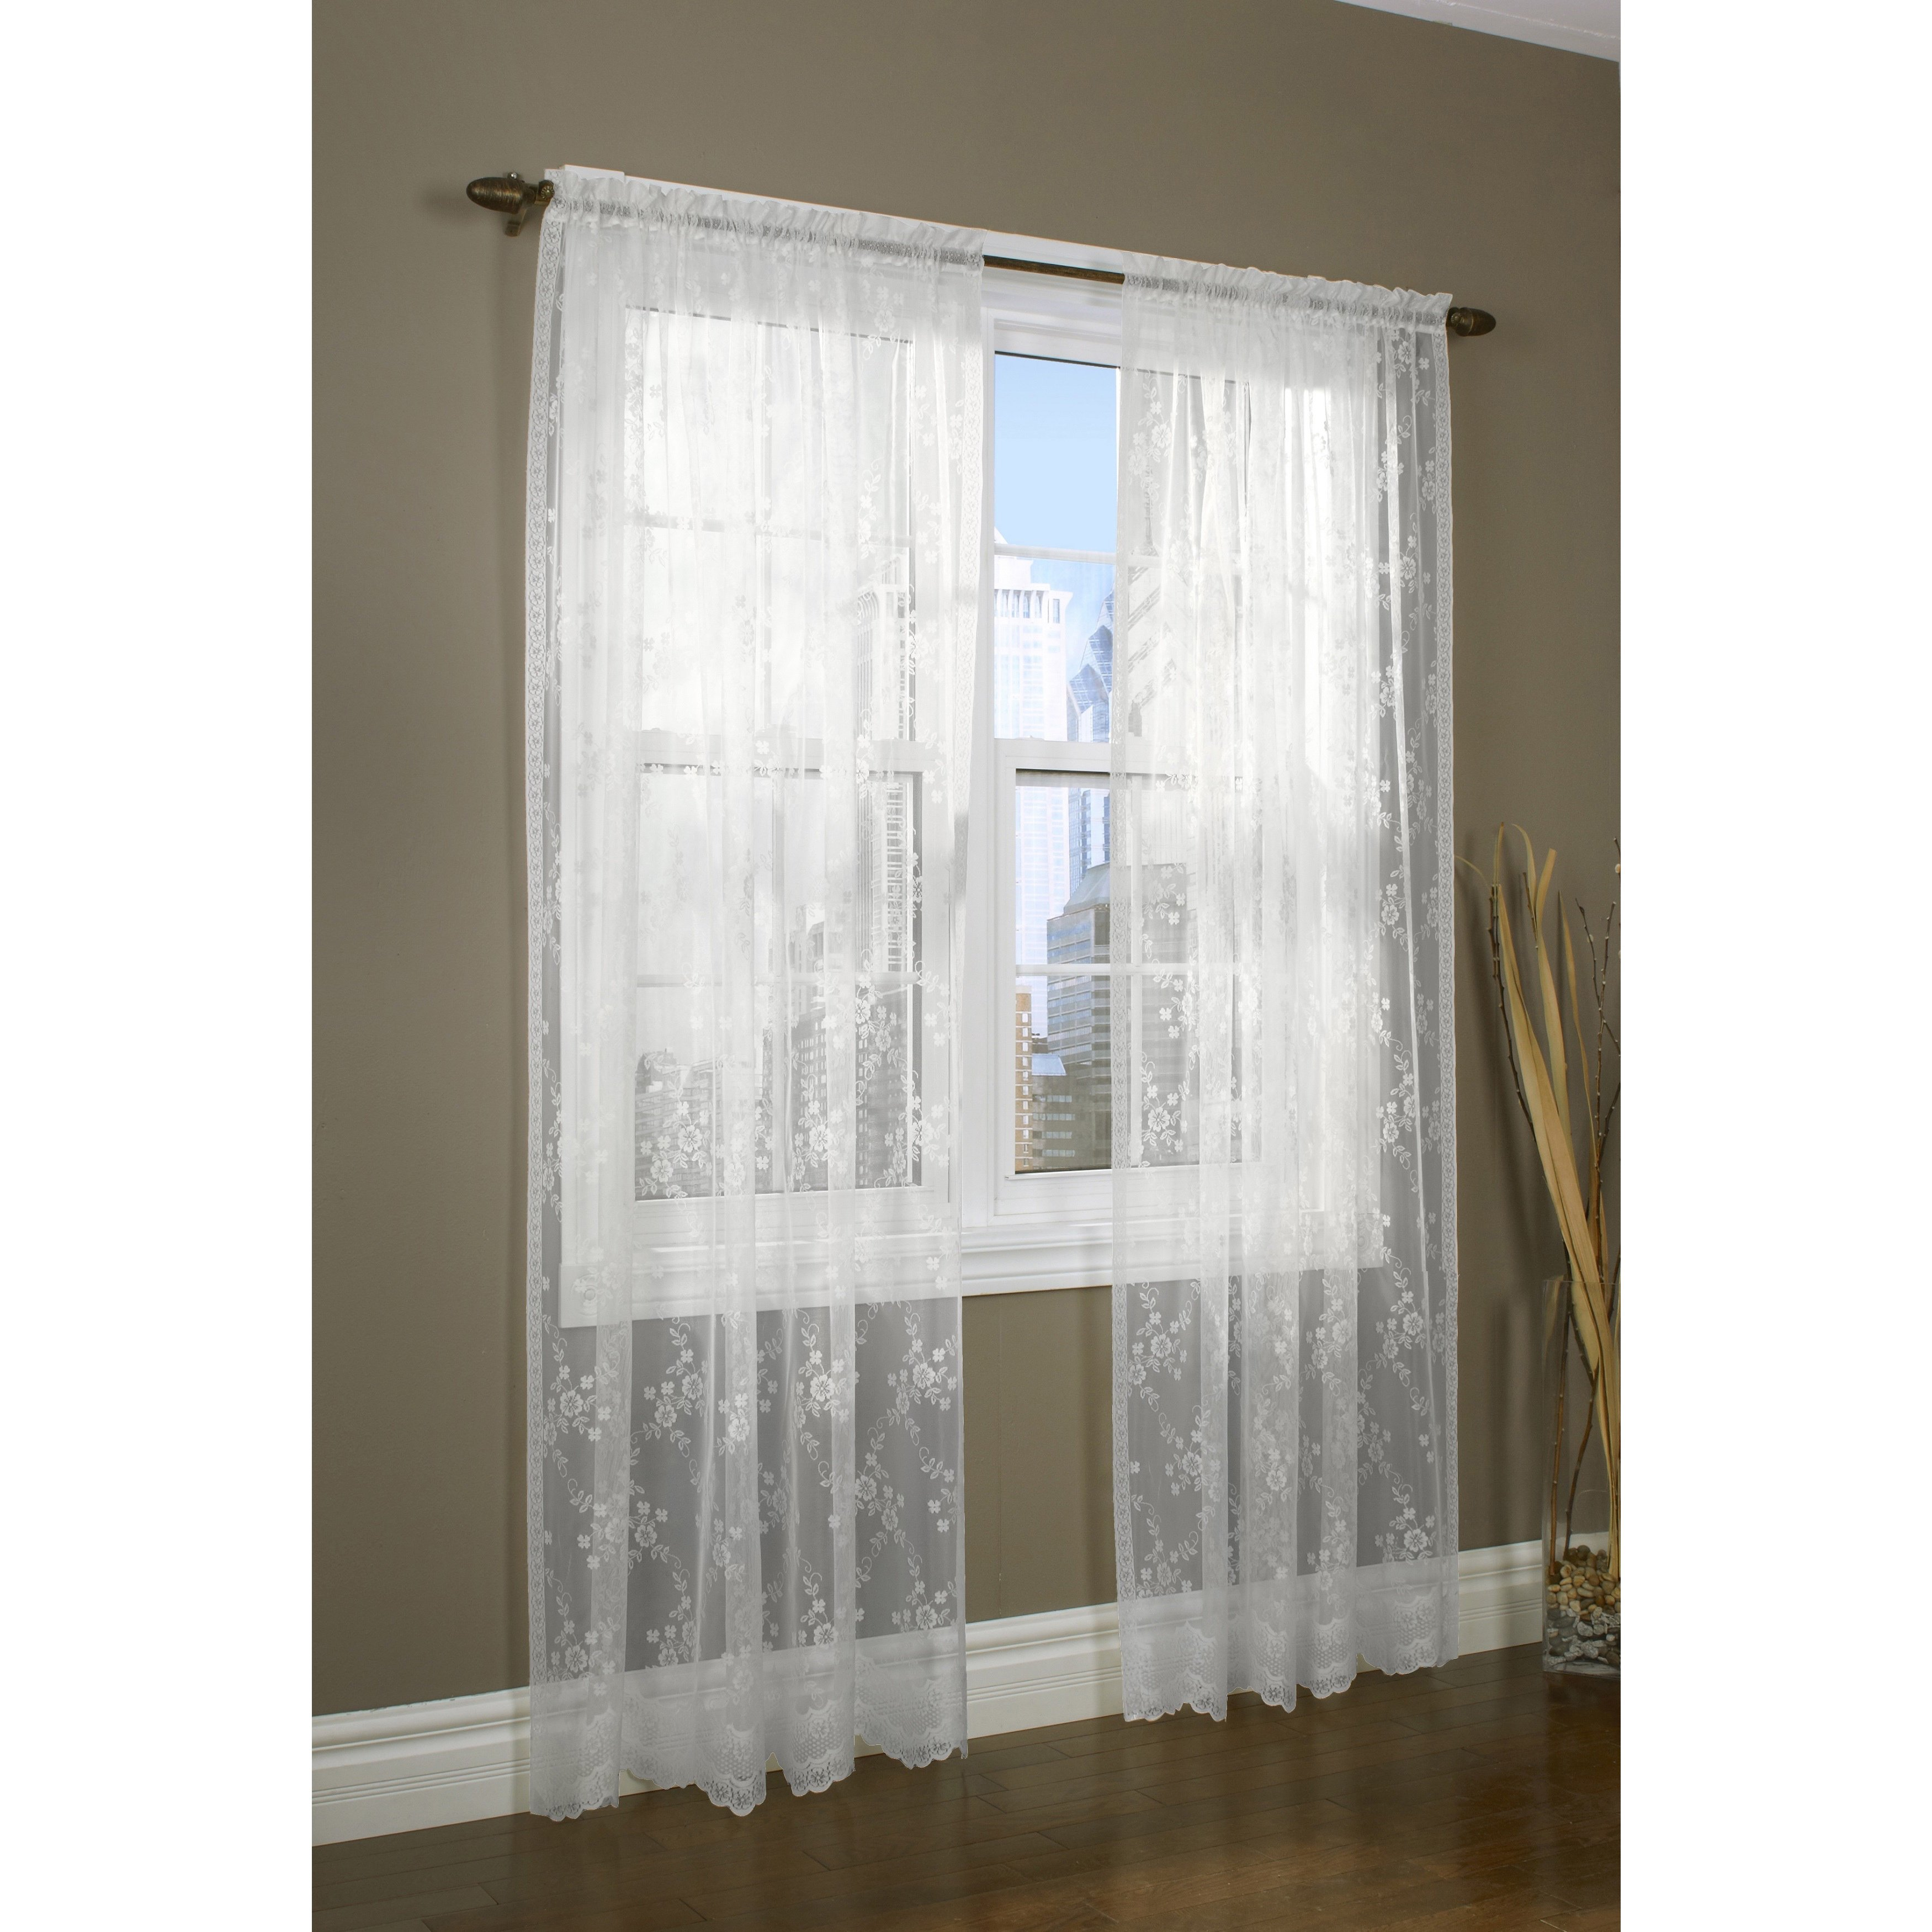 Mona Lisa Lace Window Curtain Panel N A Cream Ivory Lace